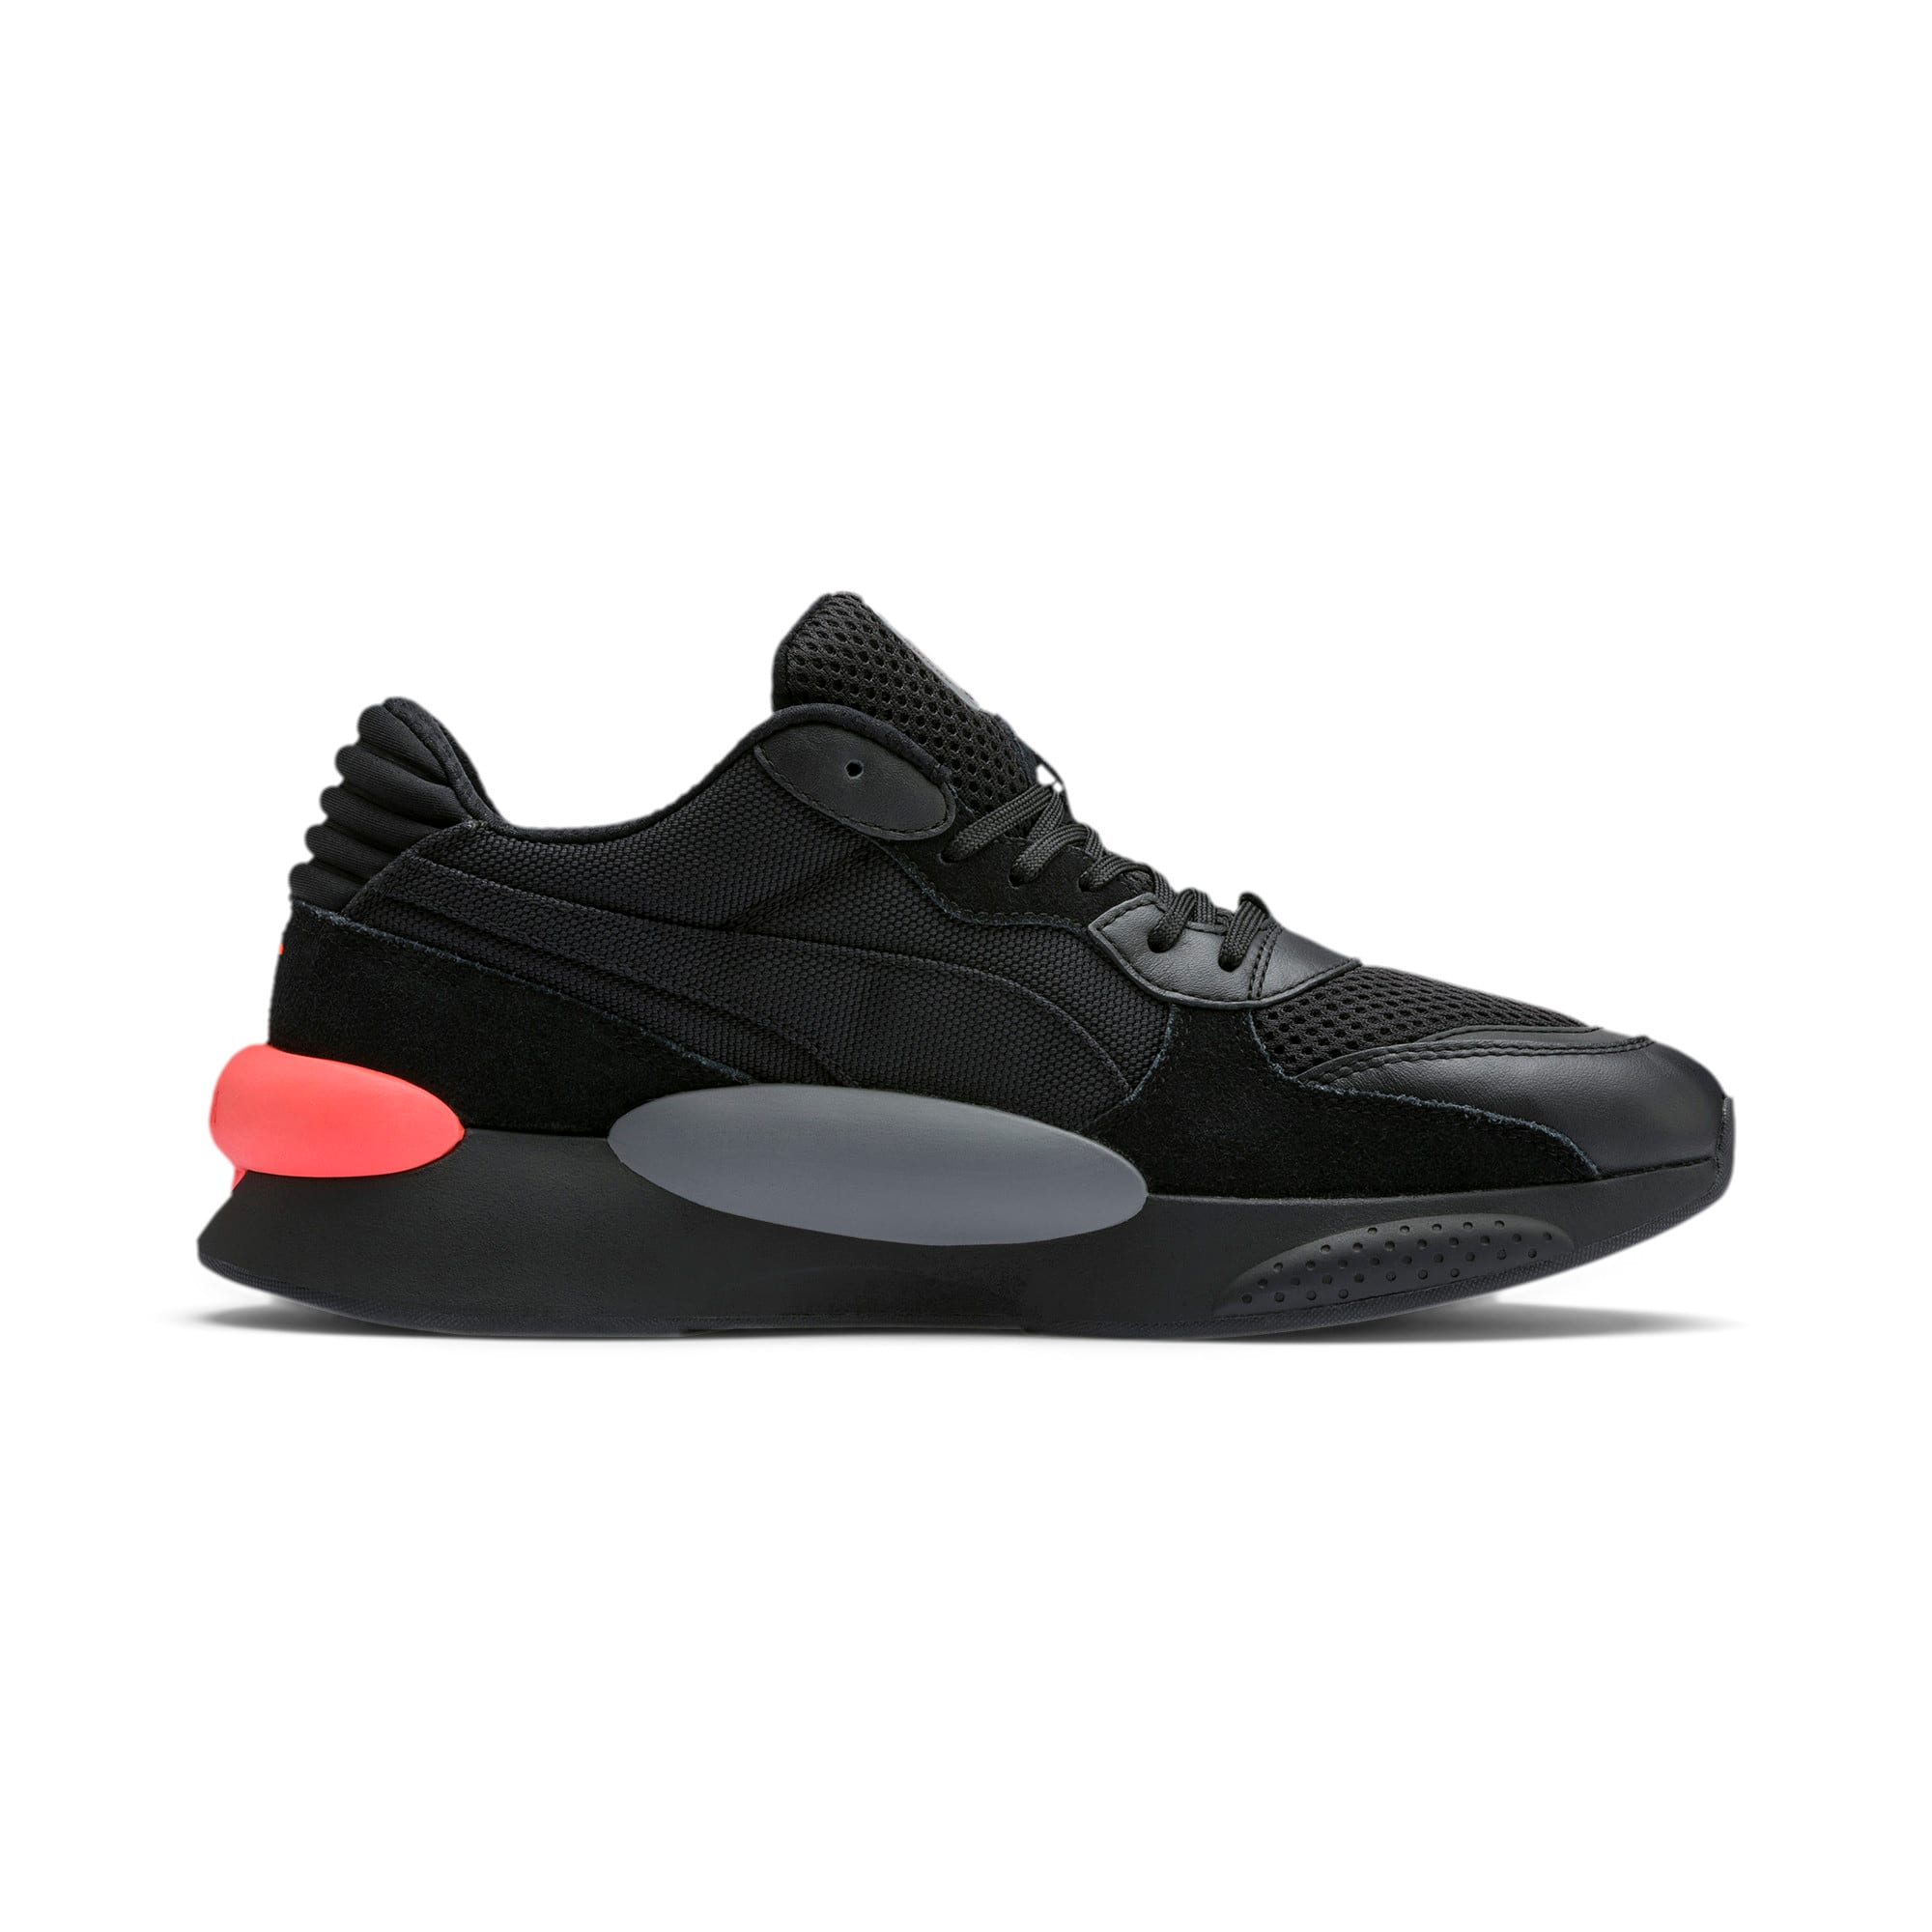 Thumbnail 5 of RS 9.8 Cosmic sportschoenen, Puma Black, medium